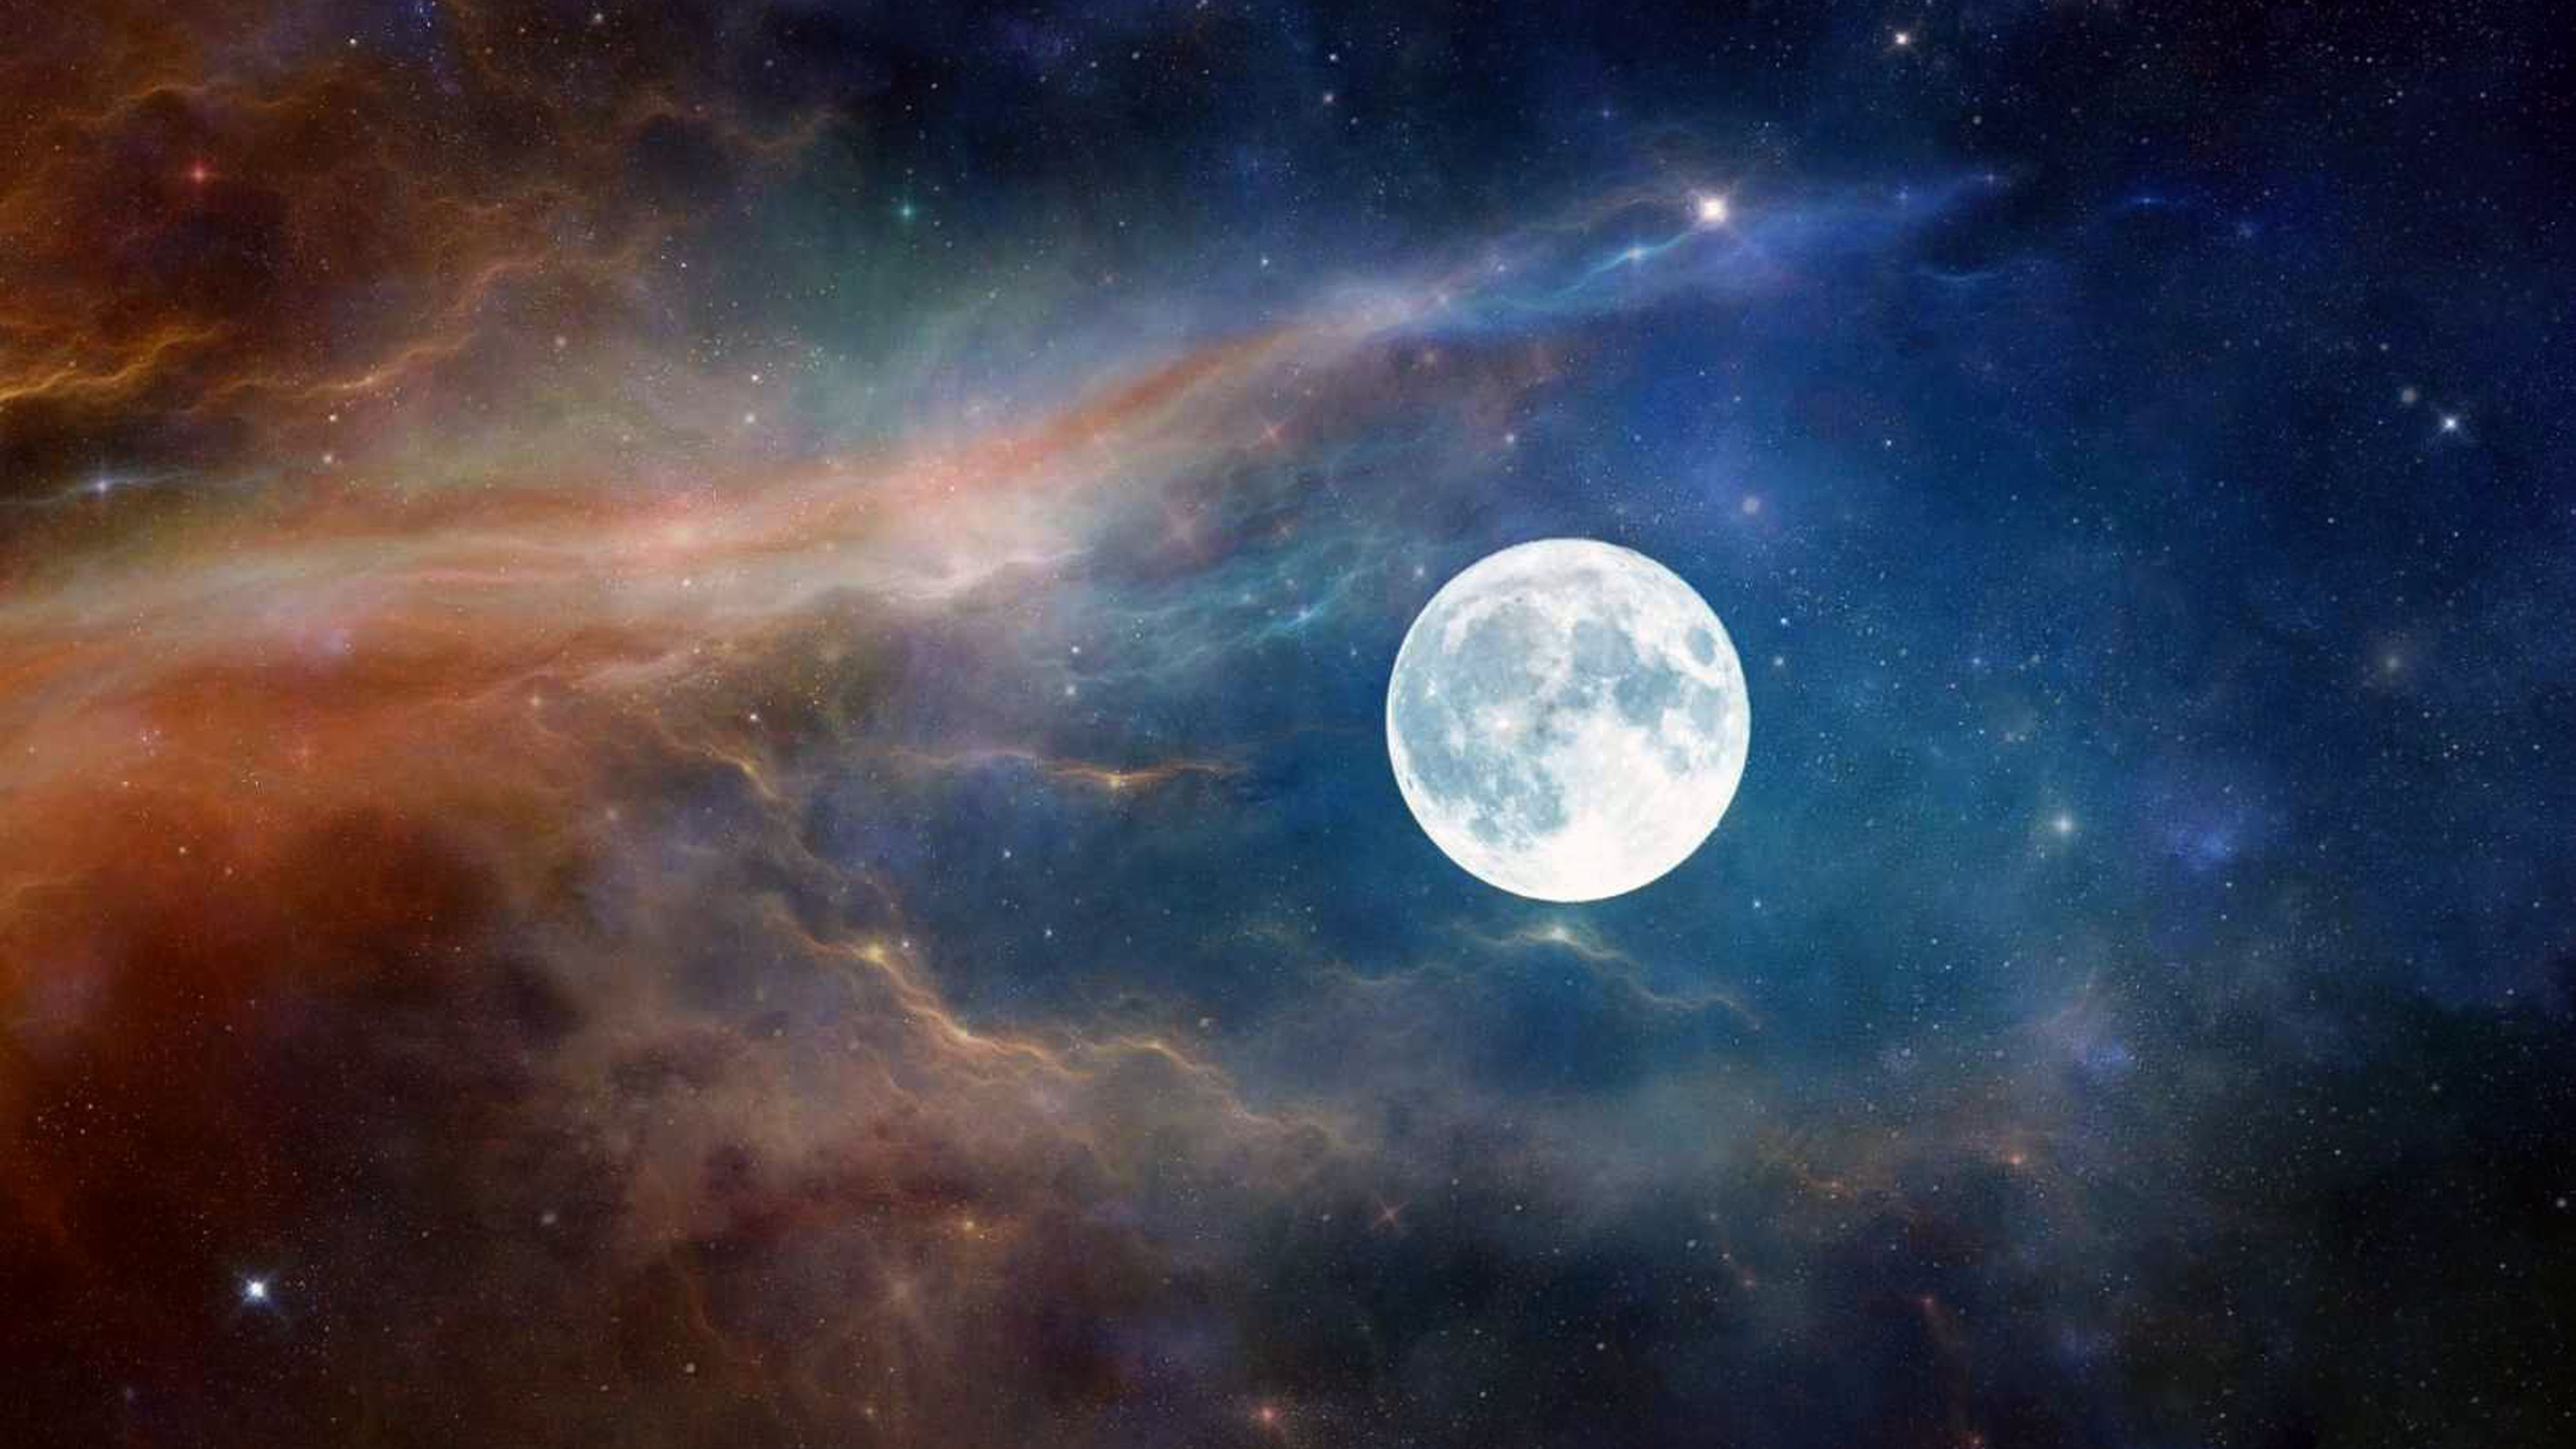 Wallpaper 4k Moon Astronaut Nature Clouds Space 4k Clouds